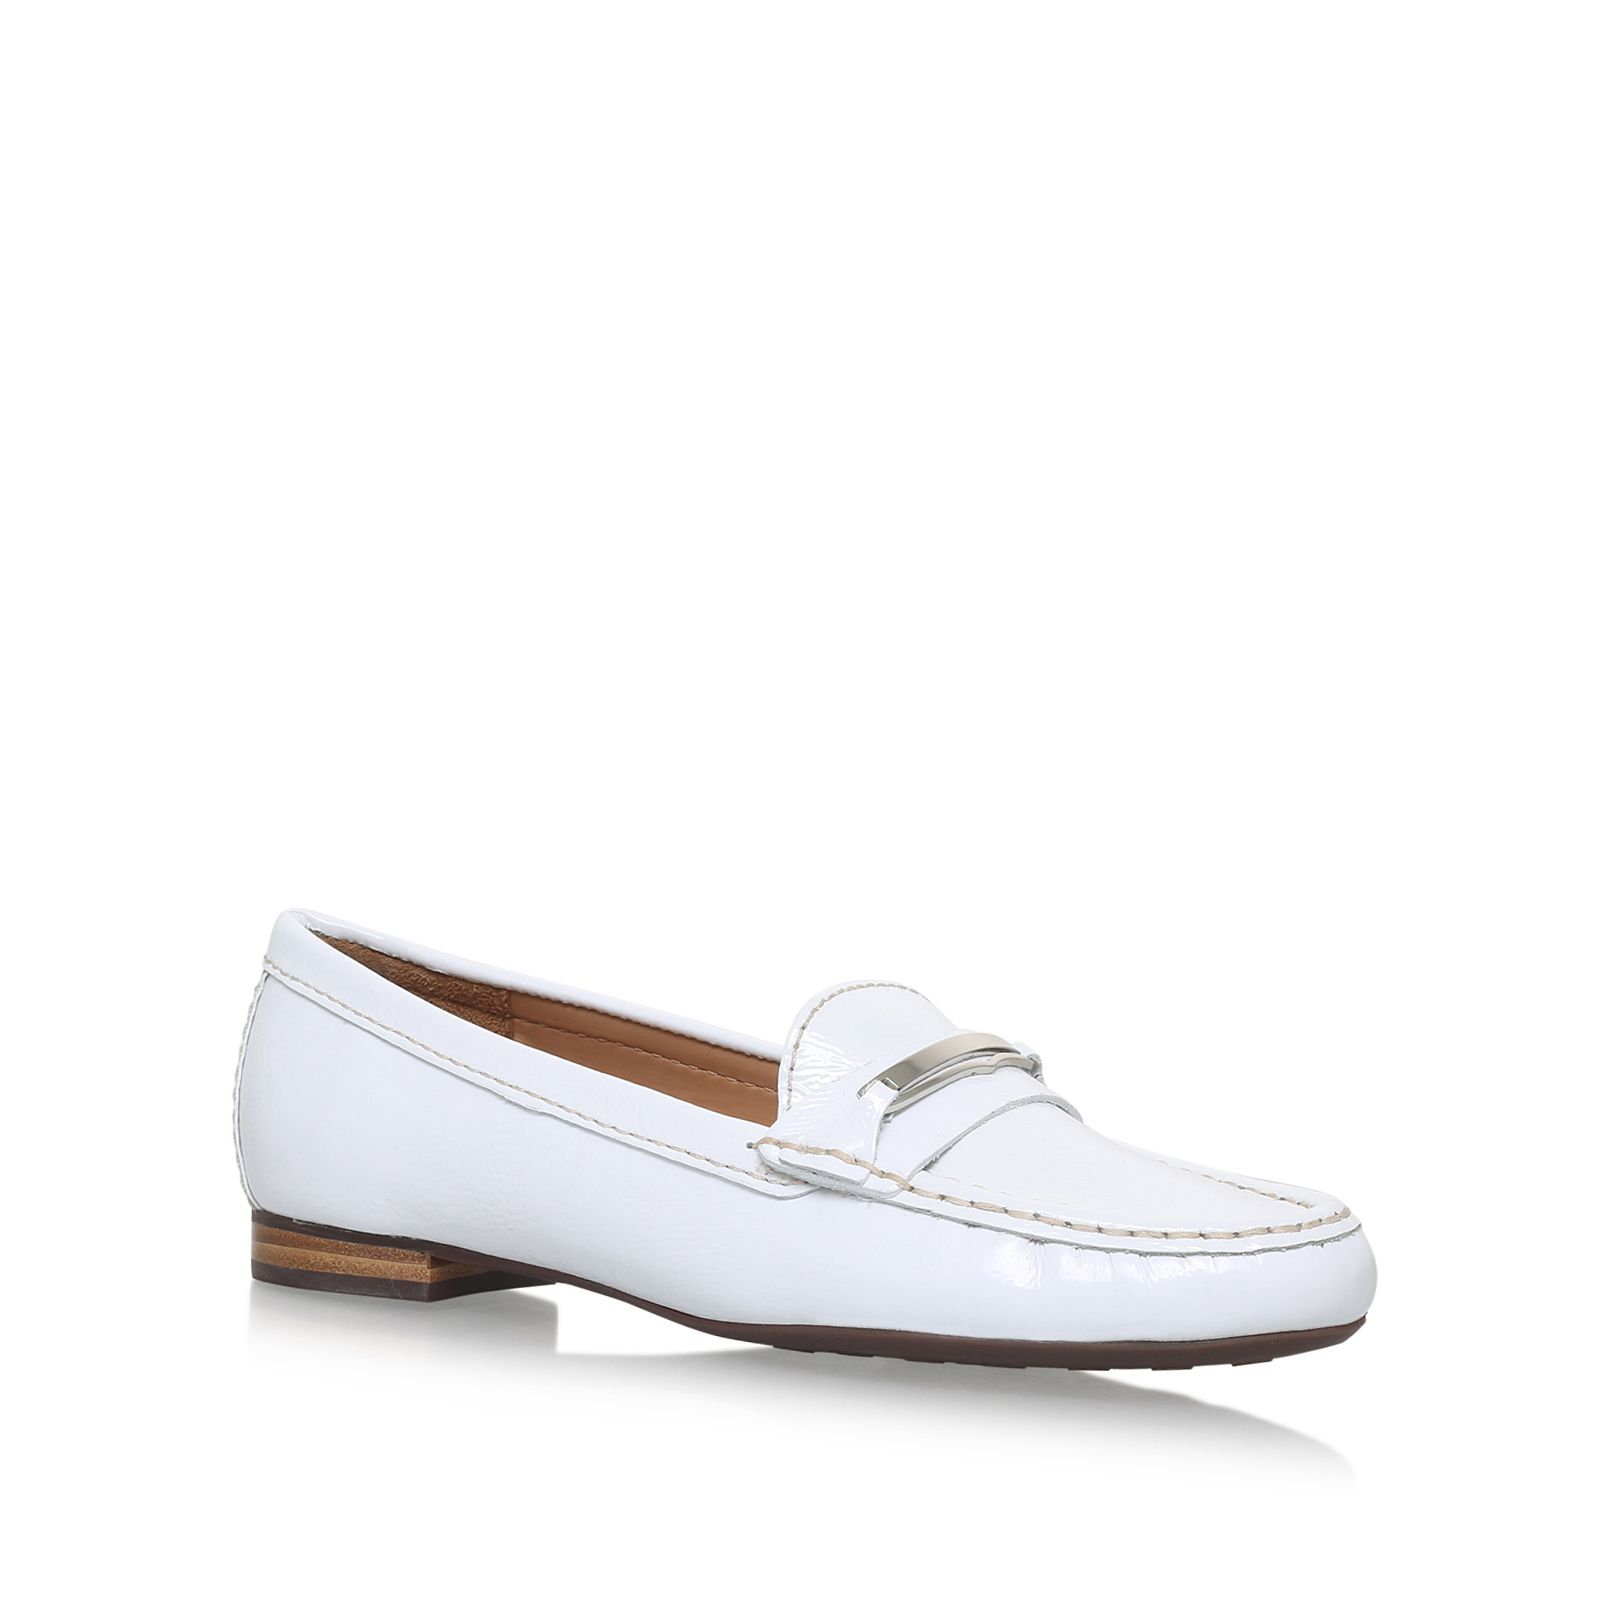 Carvela Comfort Charlotte slip on loafers, White